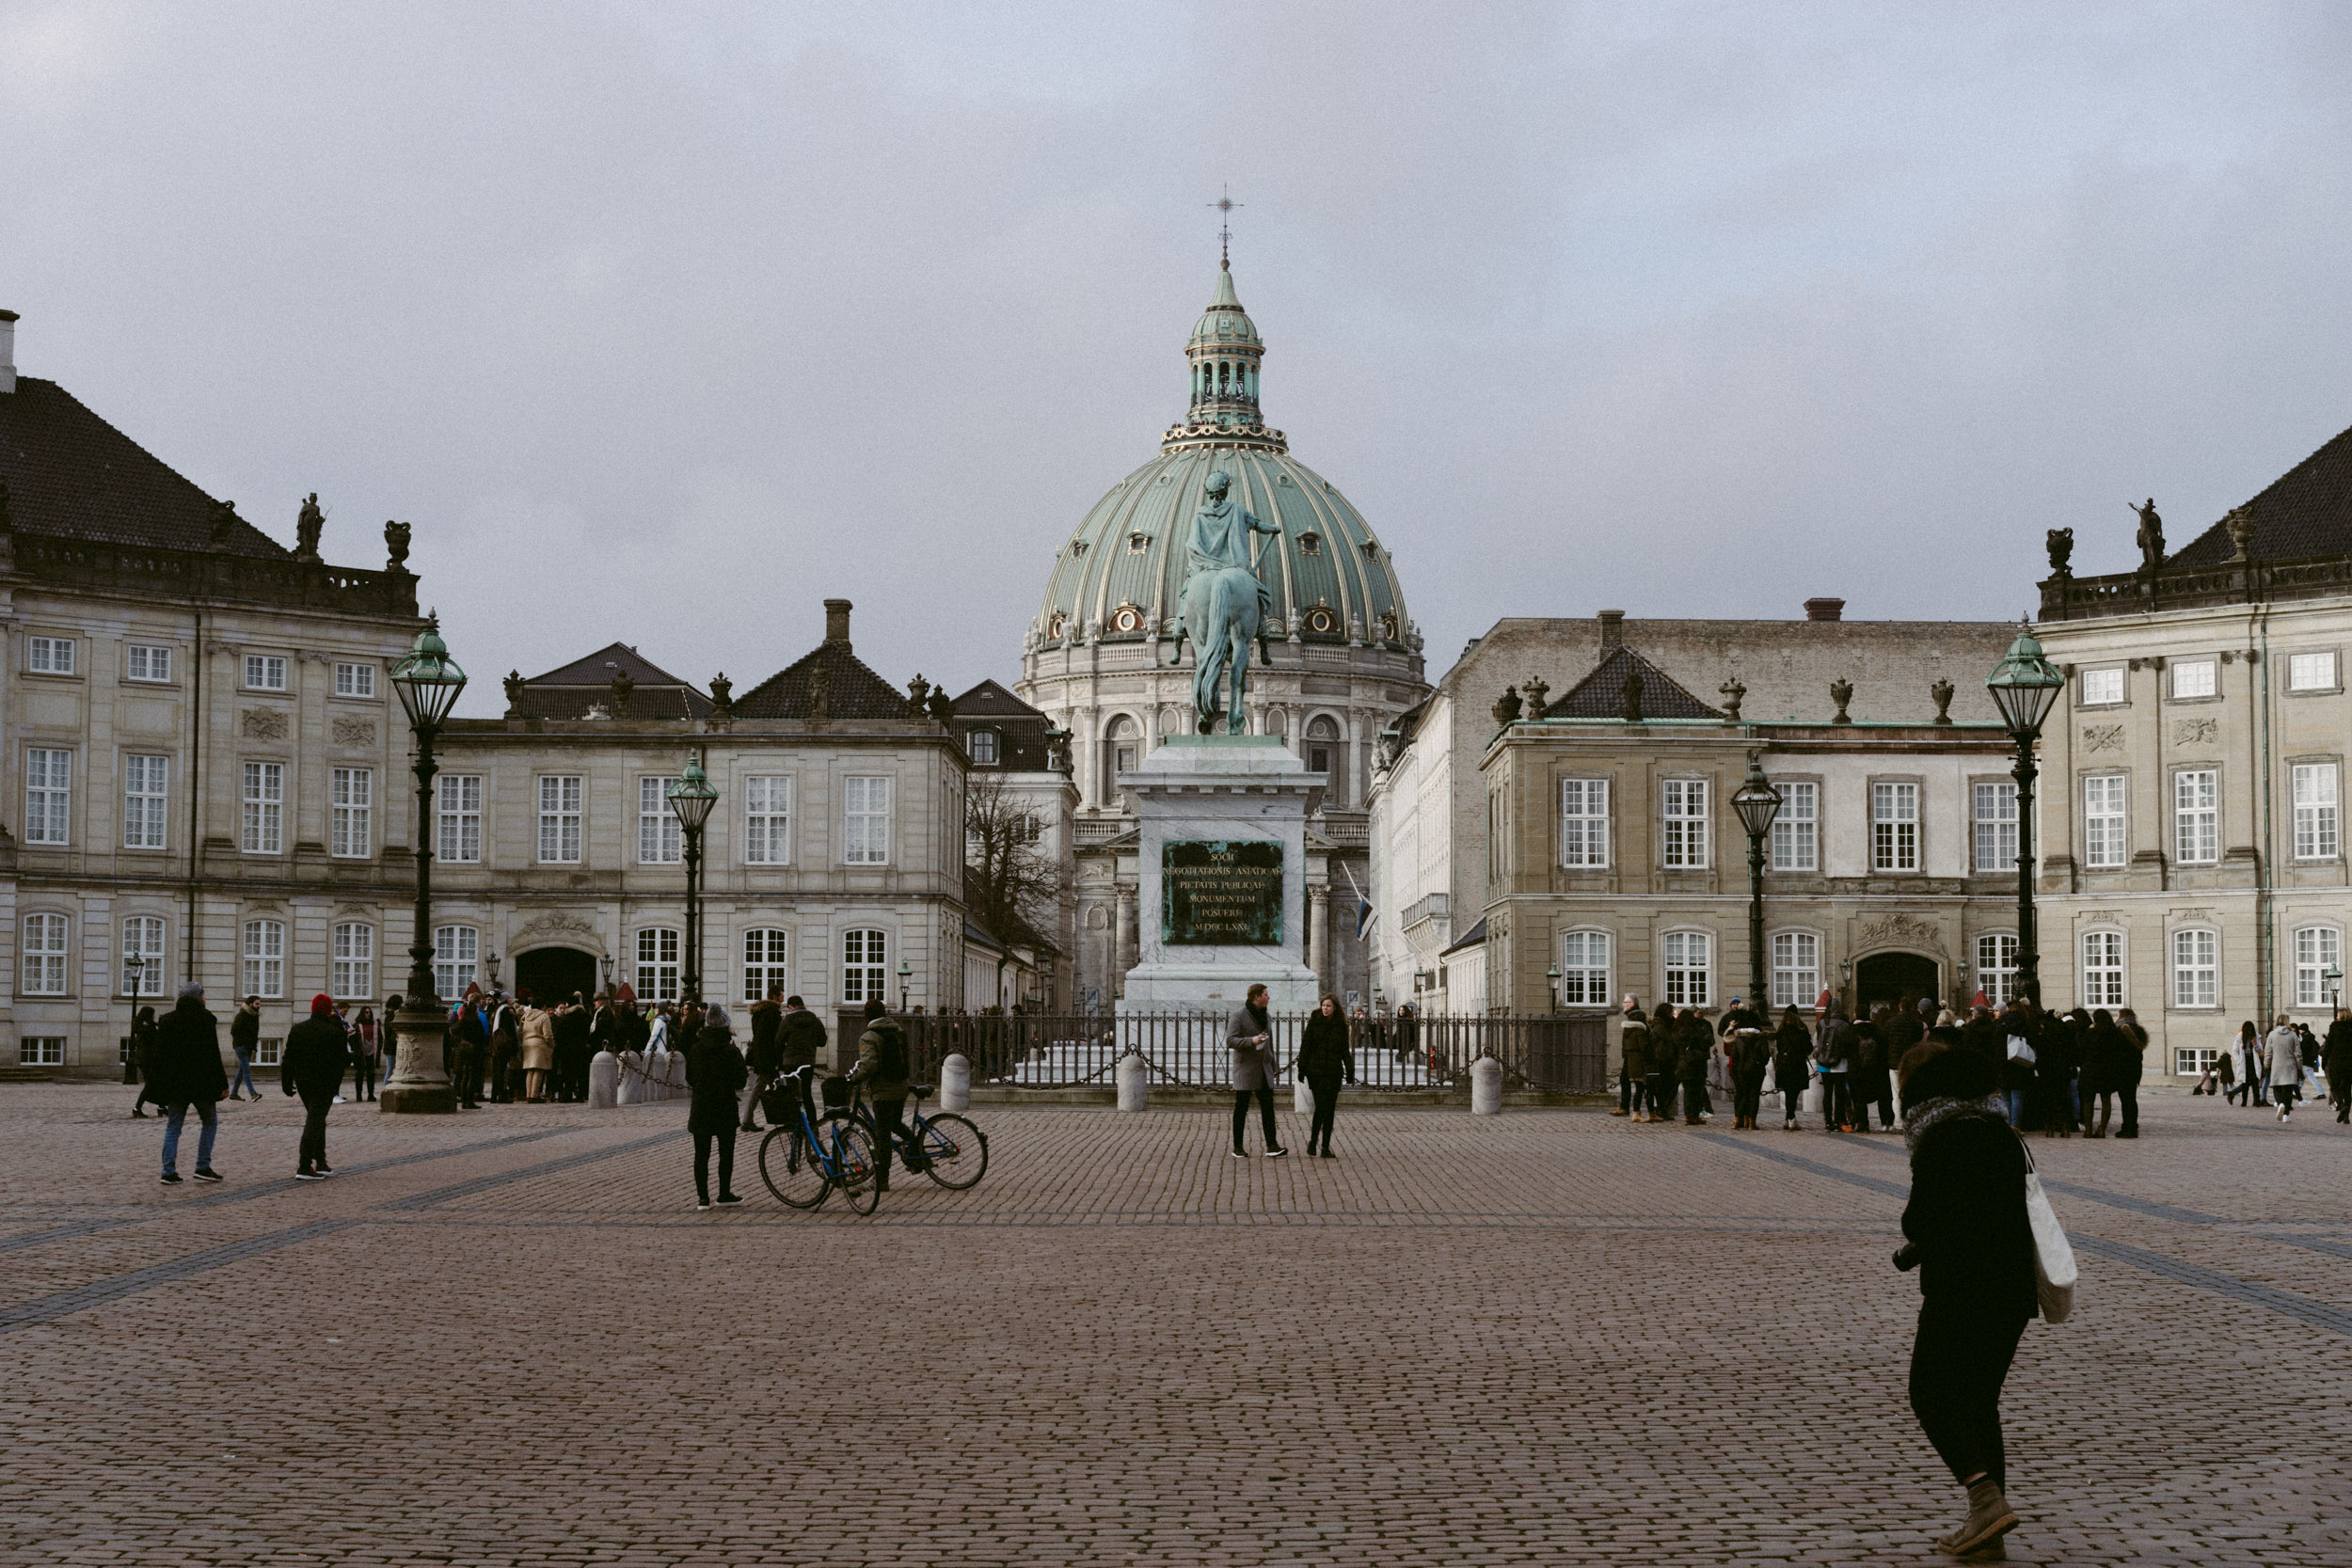 couple_photography_copenhagen_wedding_elopement_sky_and_arrows-38.jpg